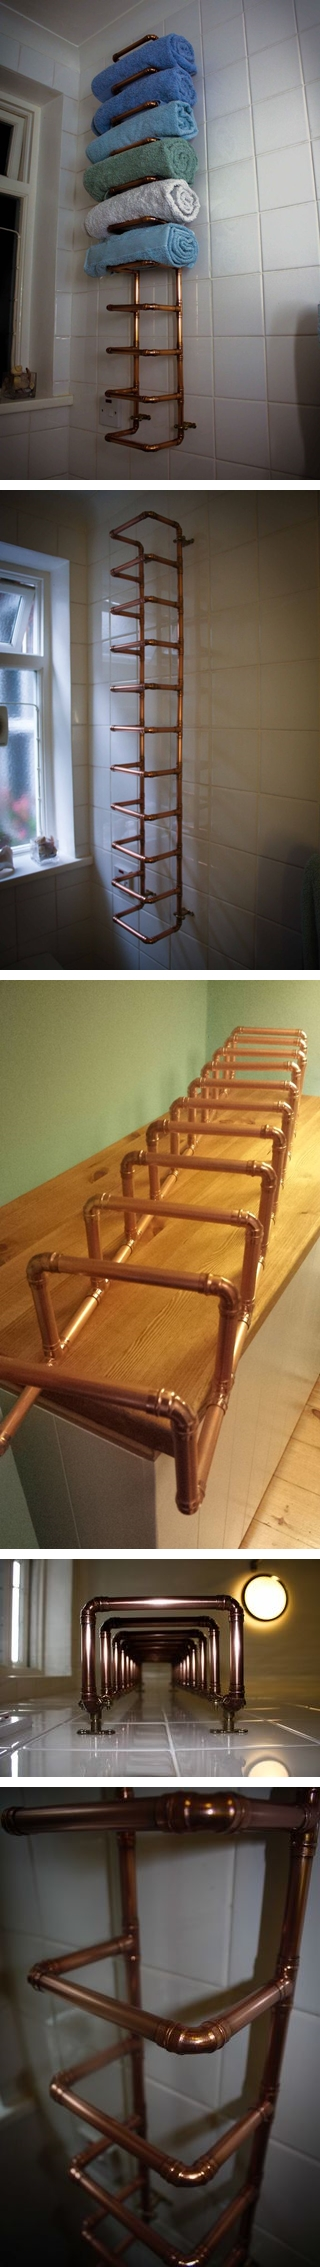 How to make copper pipe towel rail for bathroom step by step DIY tutorial instructions